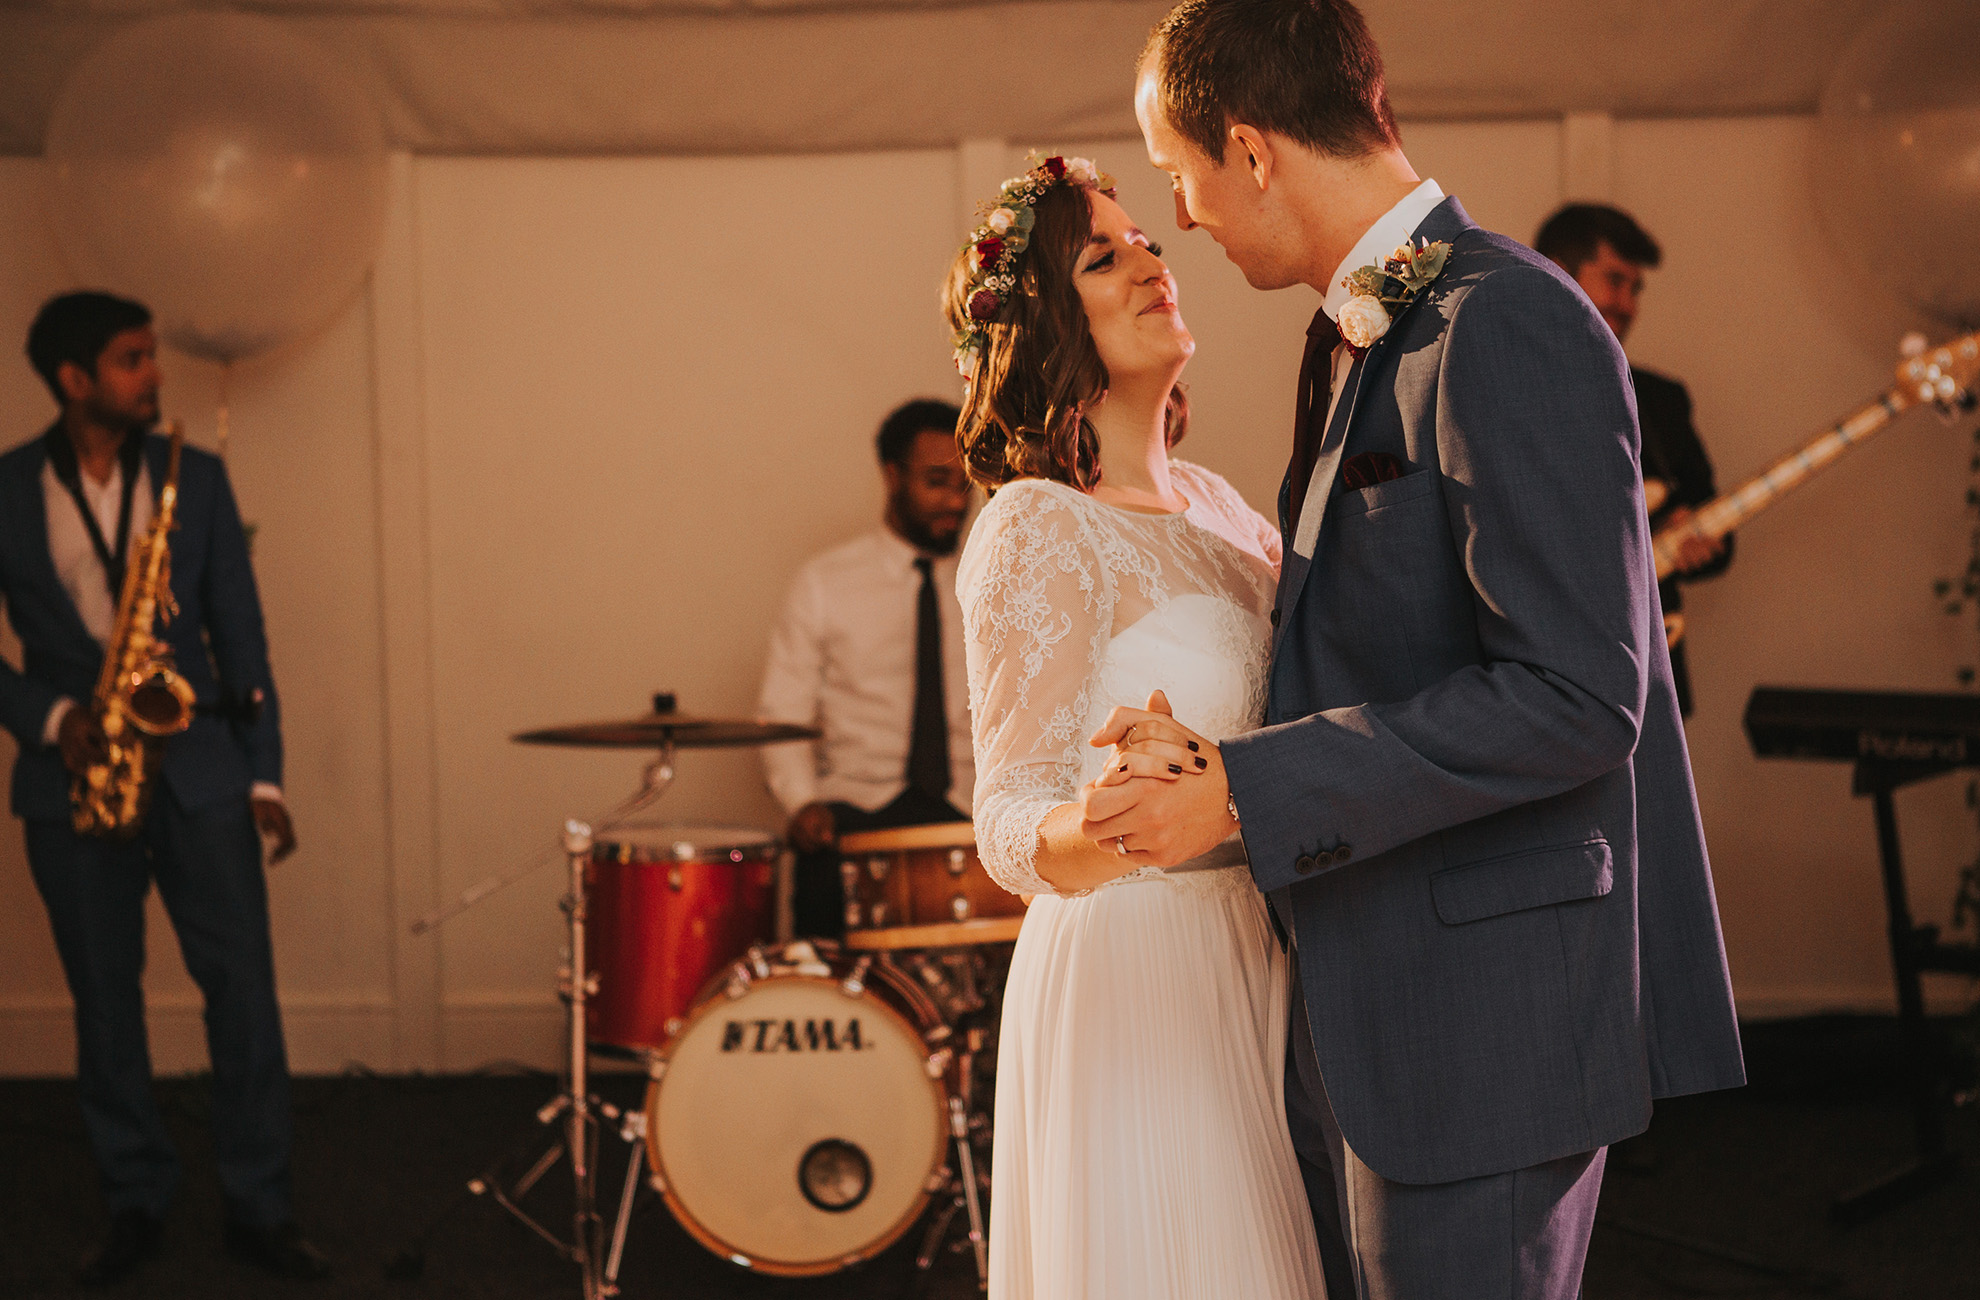 A band play the music for a couples first dance as husband and wife during their reception at Combermere Abbey